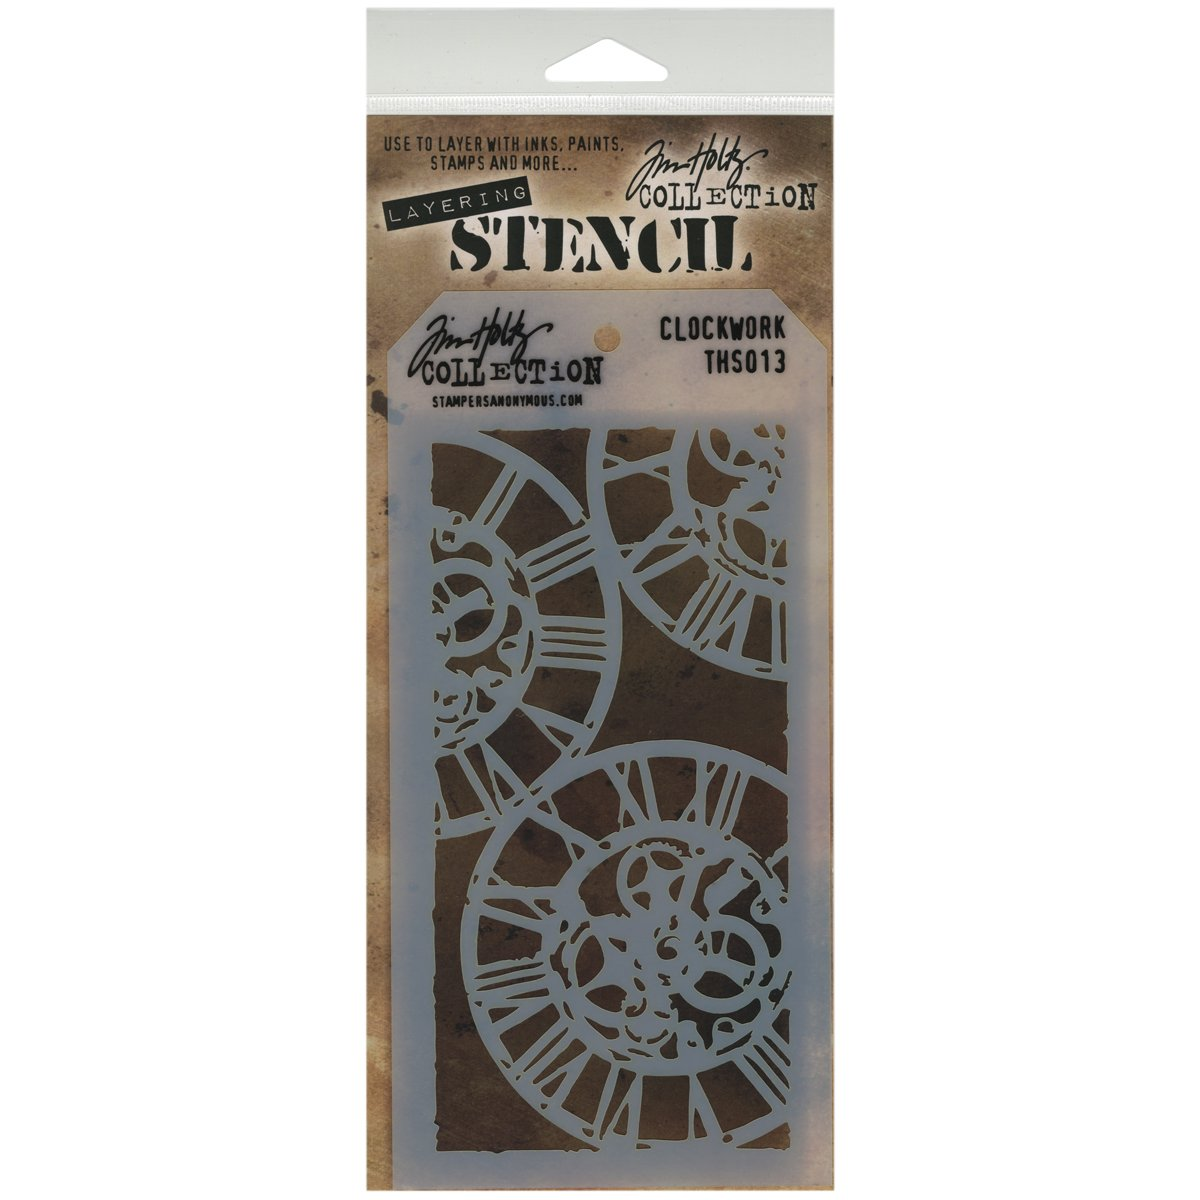 Stampers Anonymous Tim Holtz Layered Stencil, 4.125 by 8.5-Inch, Clockwork THS-013